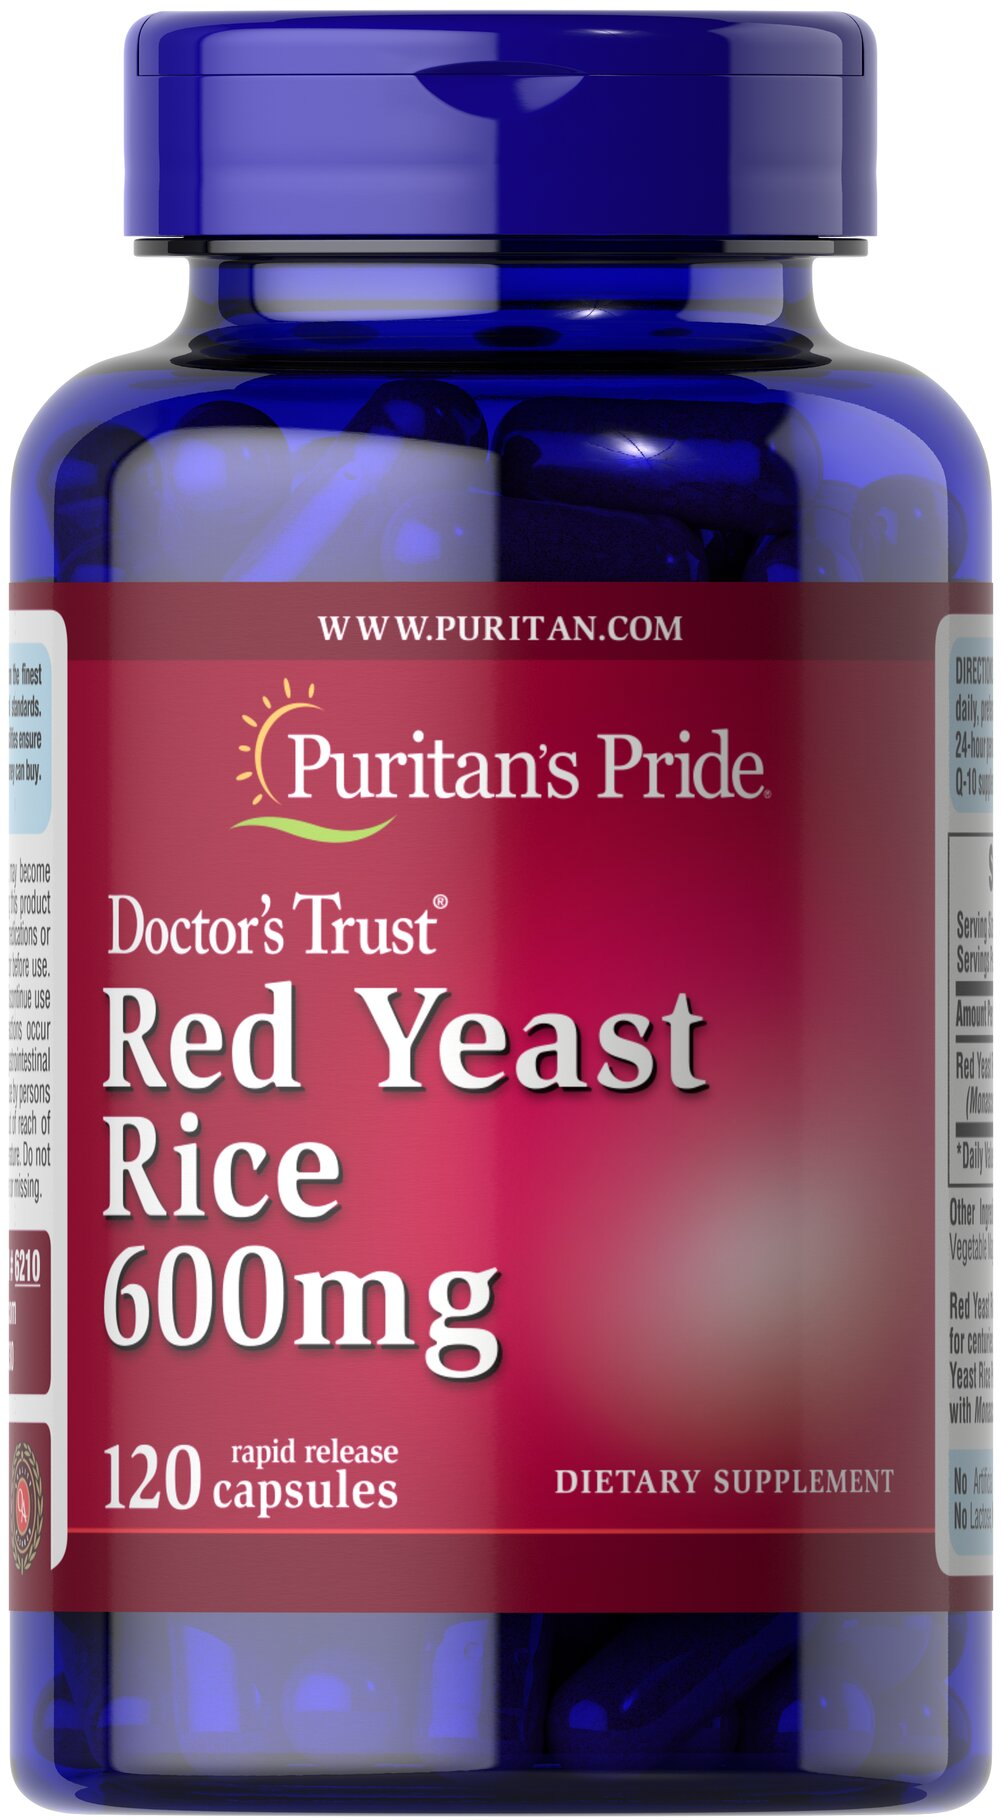 Red Yeast Rice 600 mg  120 Capsules 600 mg $18.99